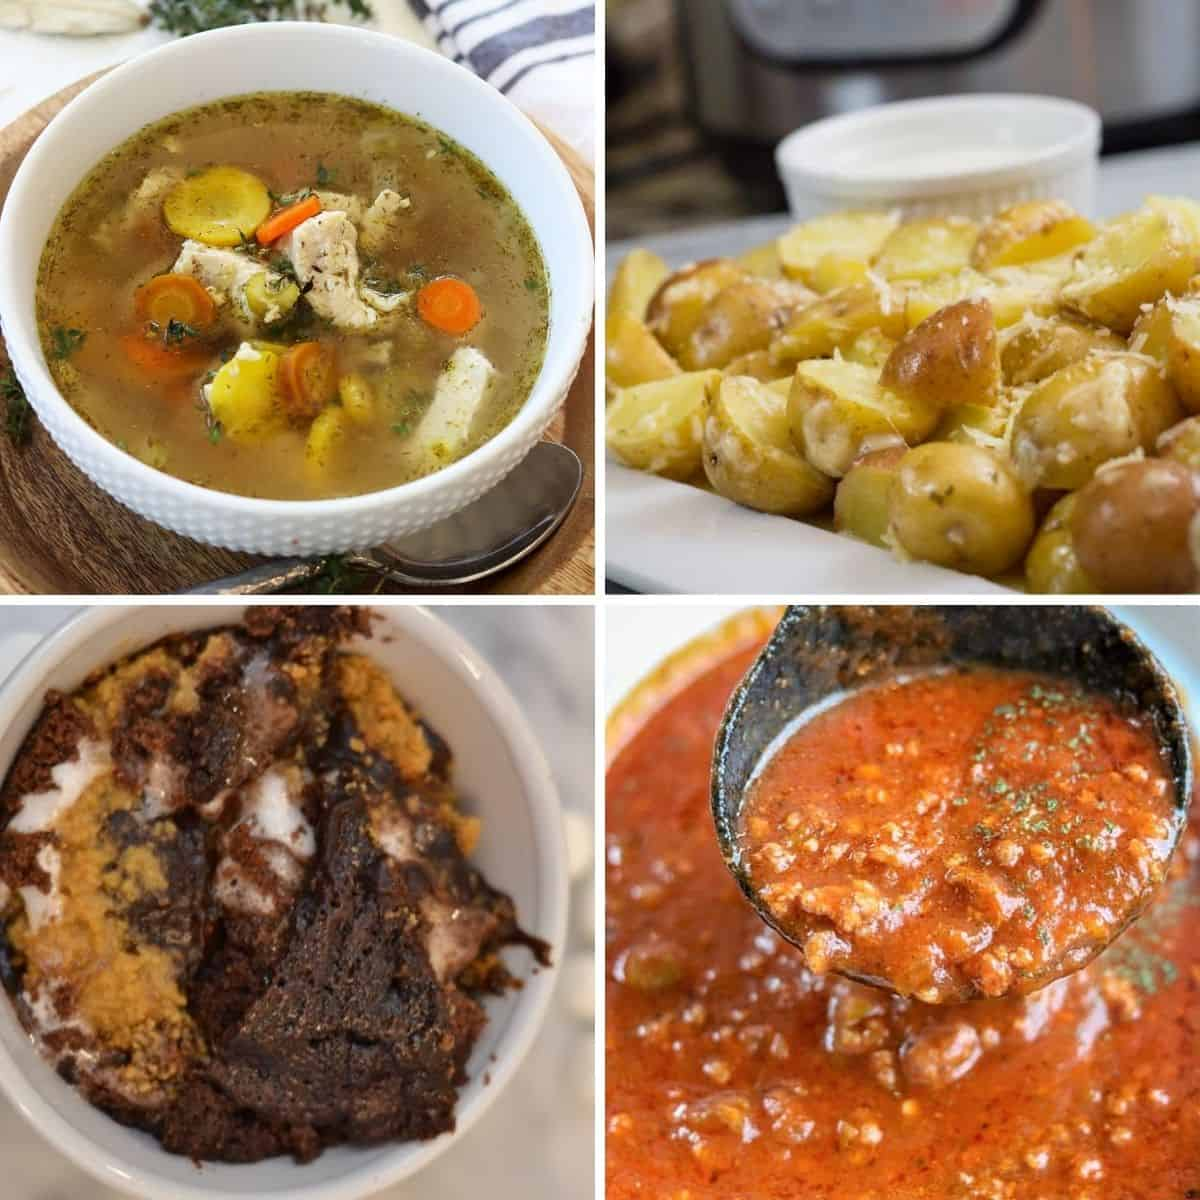 4 part square image showing 4 different instant pot recipes you can easily cook in your rv - chicken soup, spaghetti sauce, potatoes, and brownie